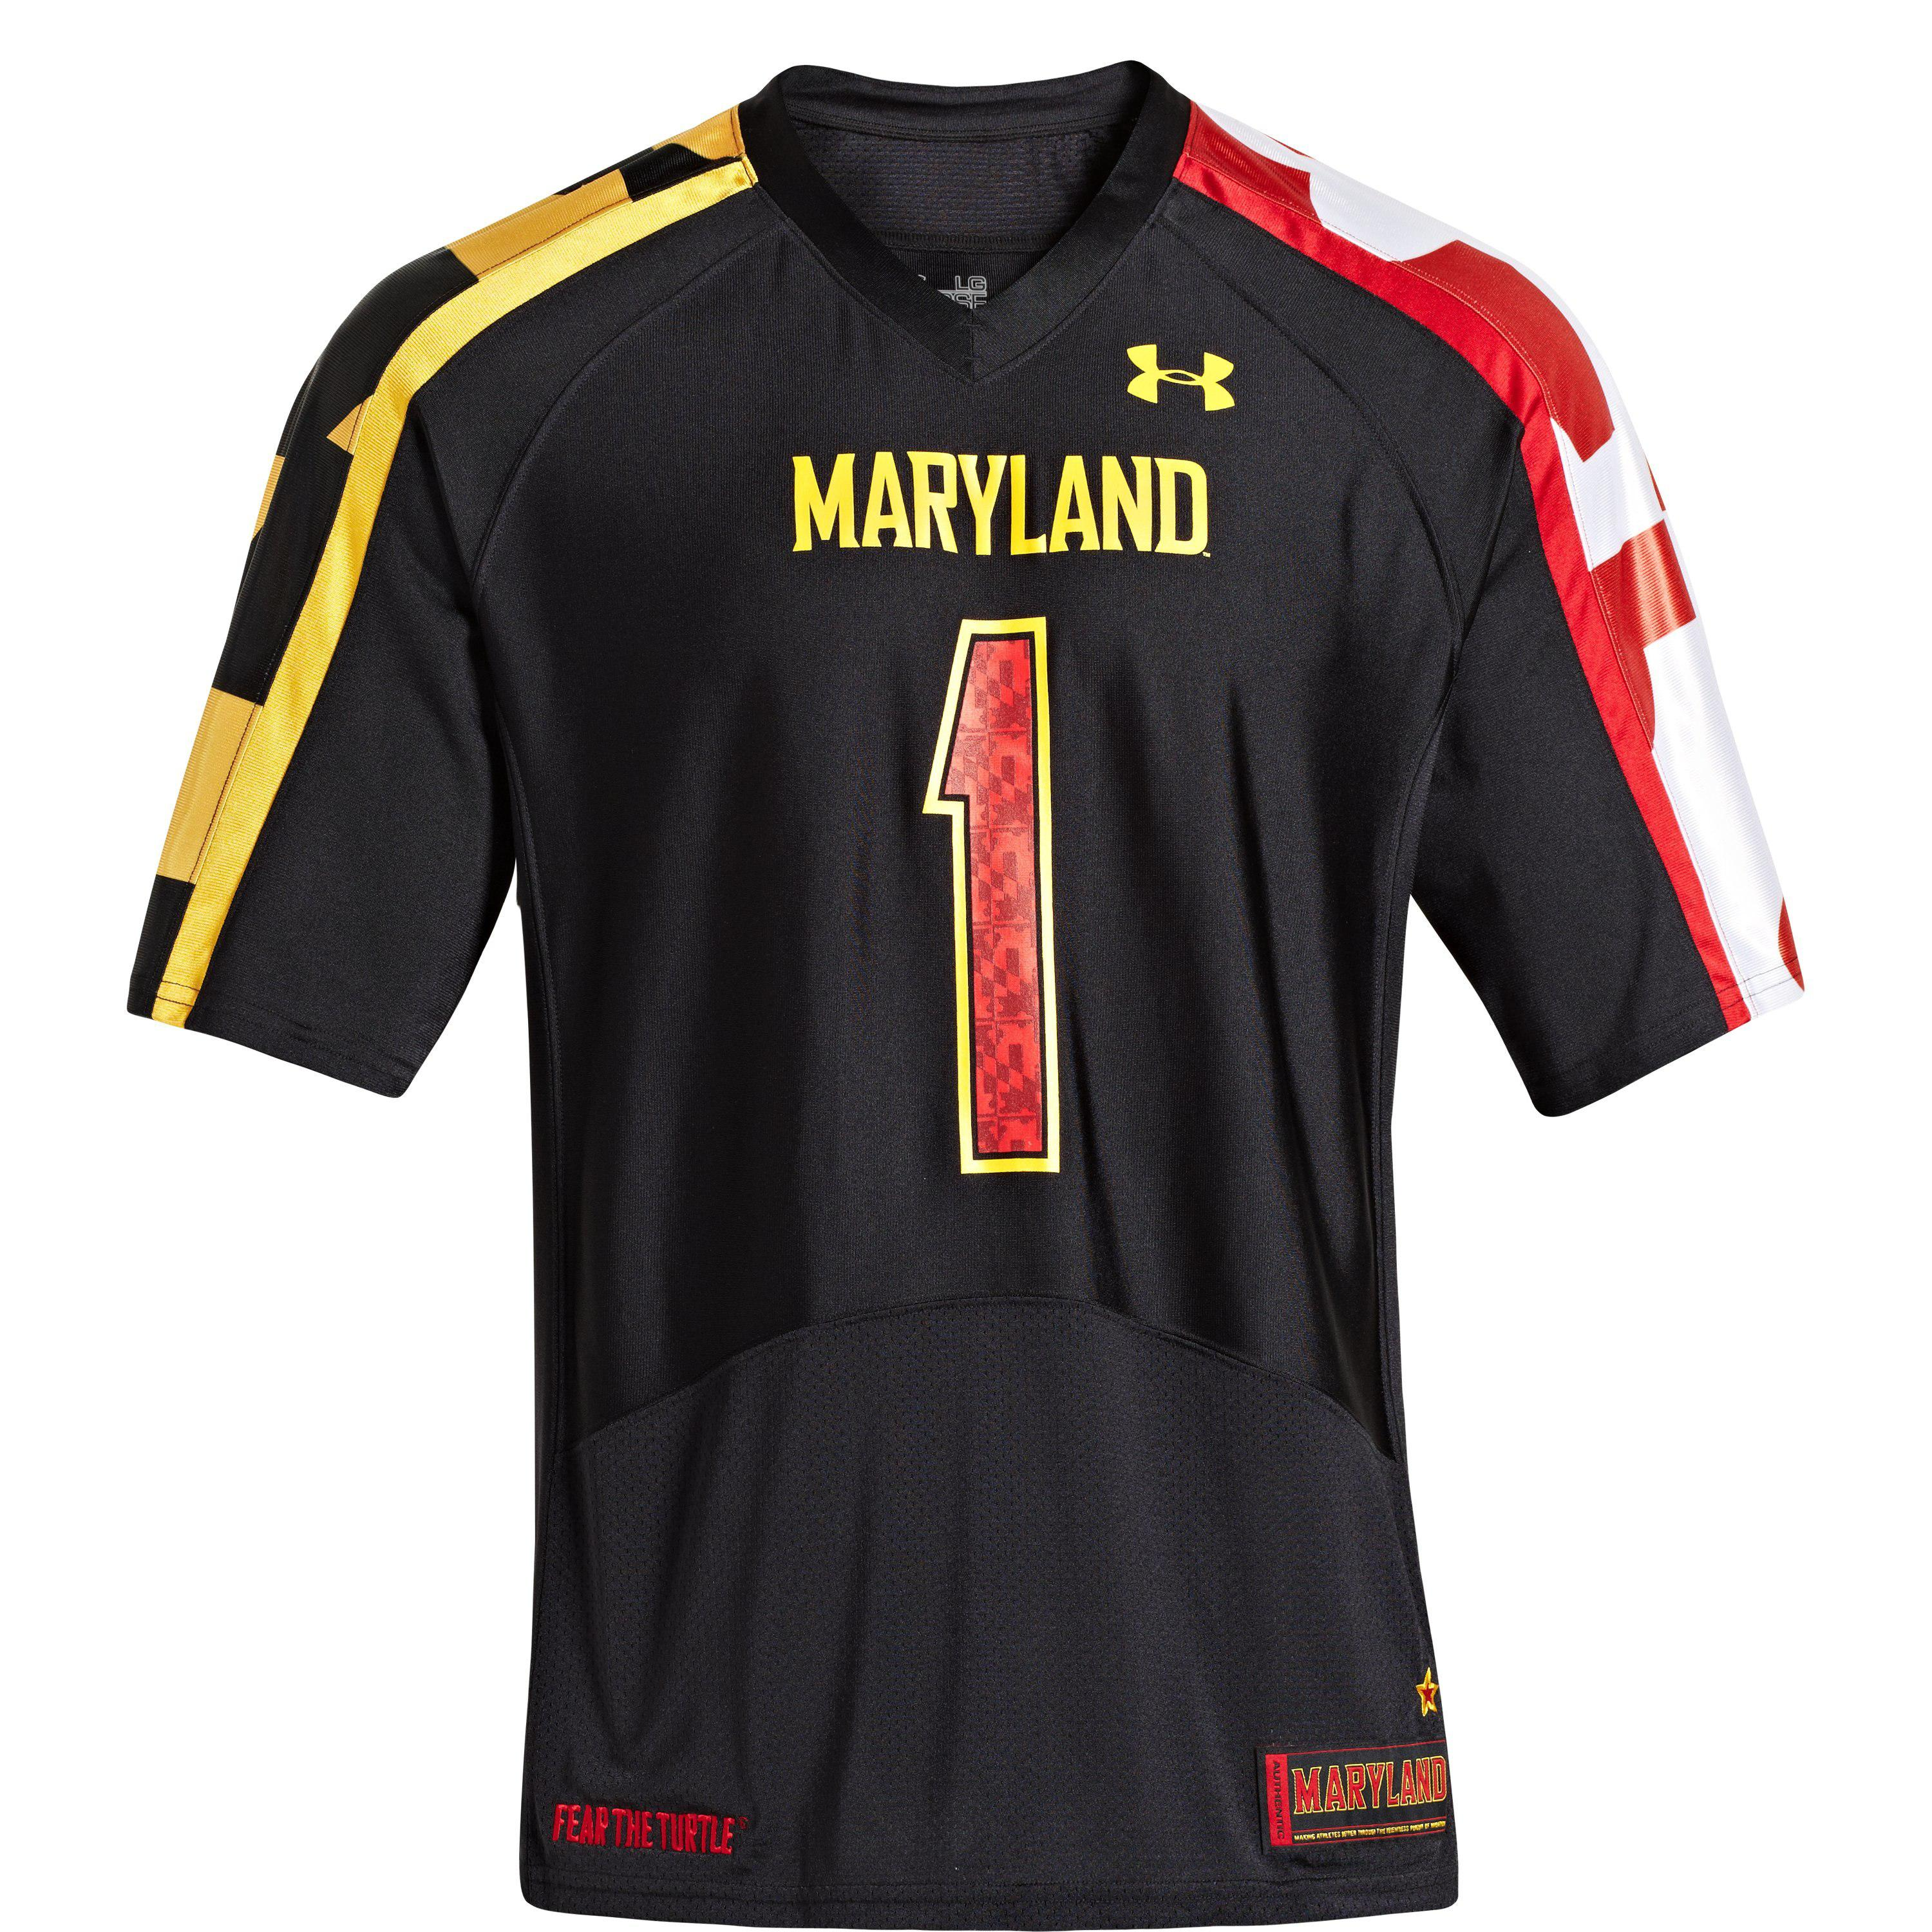 Lyst - Under Armour Men s Ua Maryland Pride Replica Jersey in Black ... 0c5a16a35